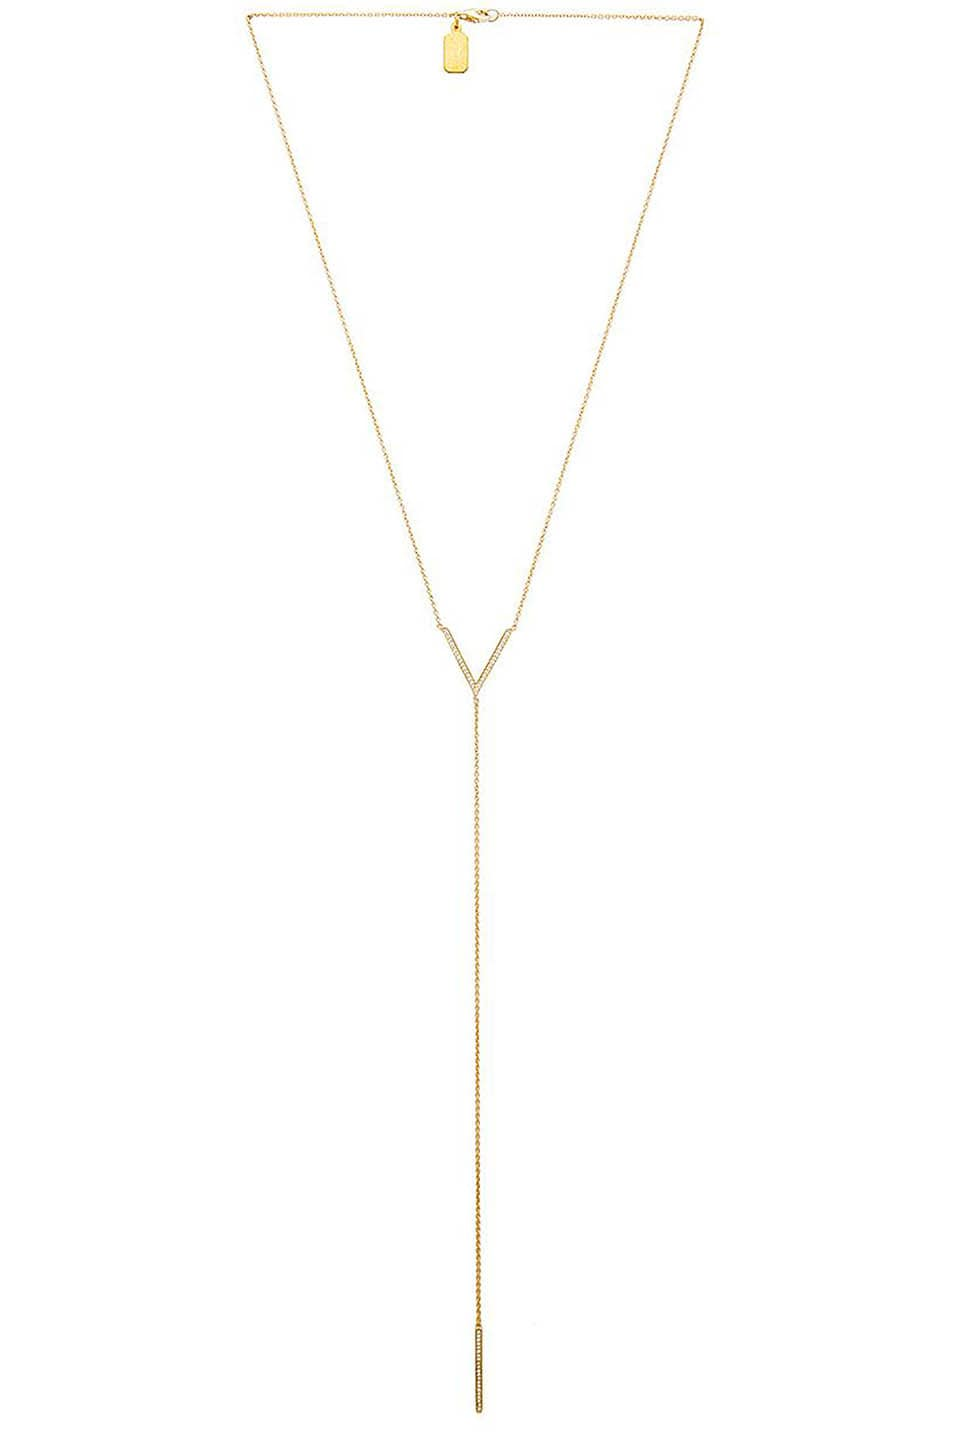 Lucky Star Victory Necklace in Gold